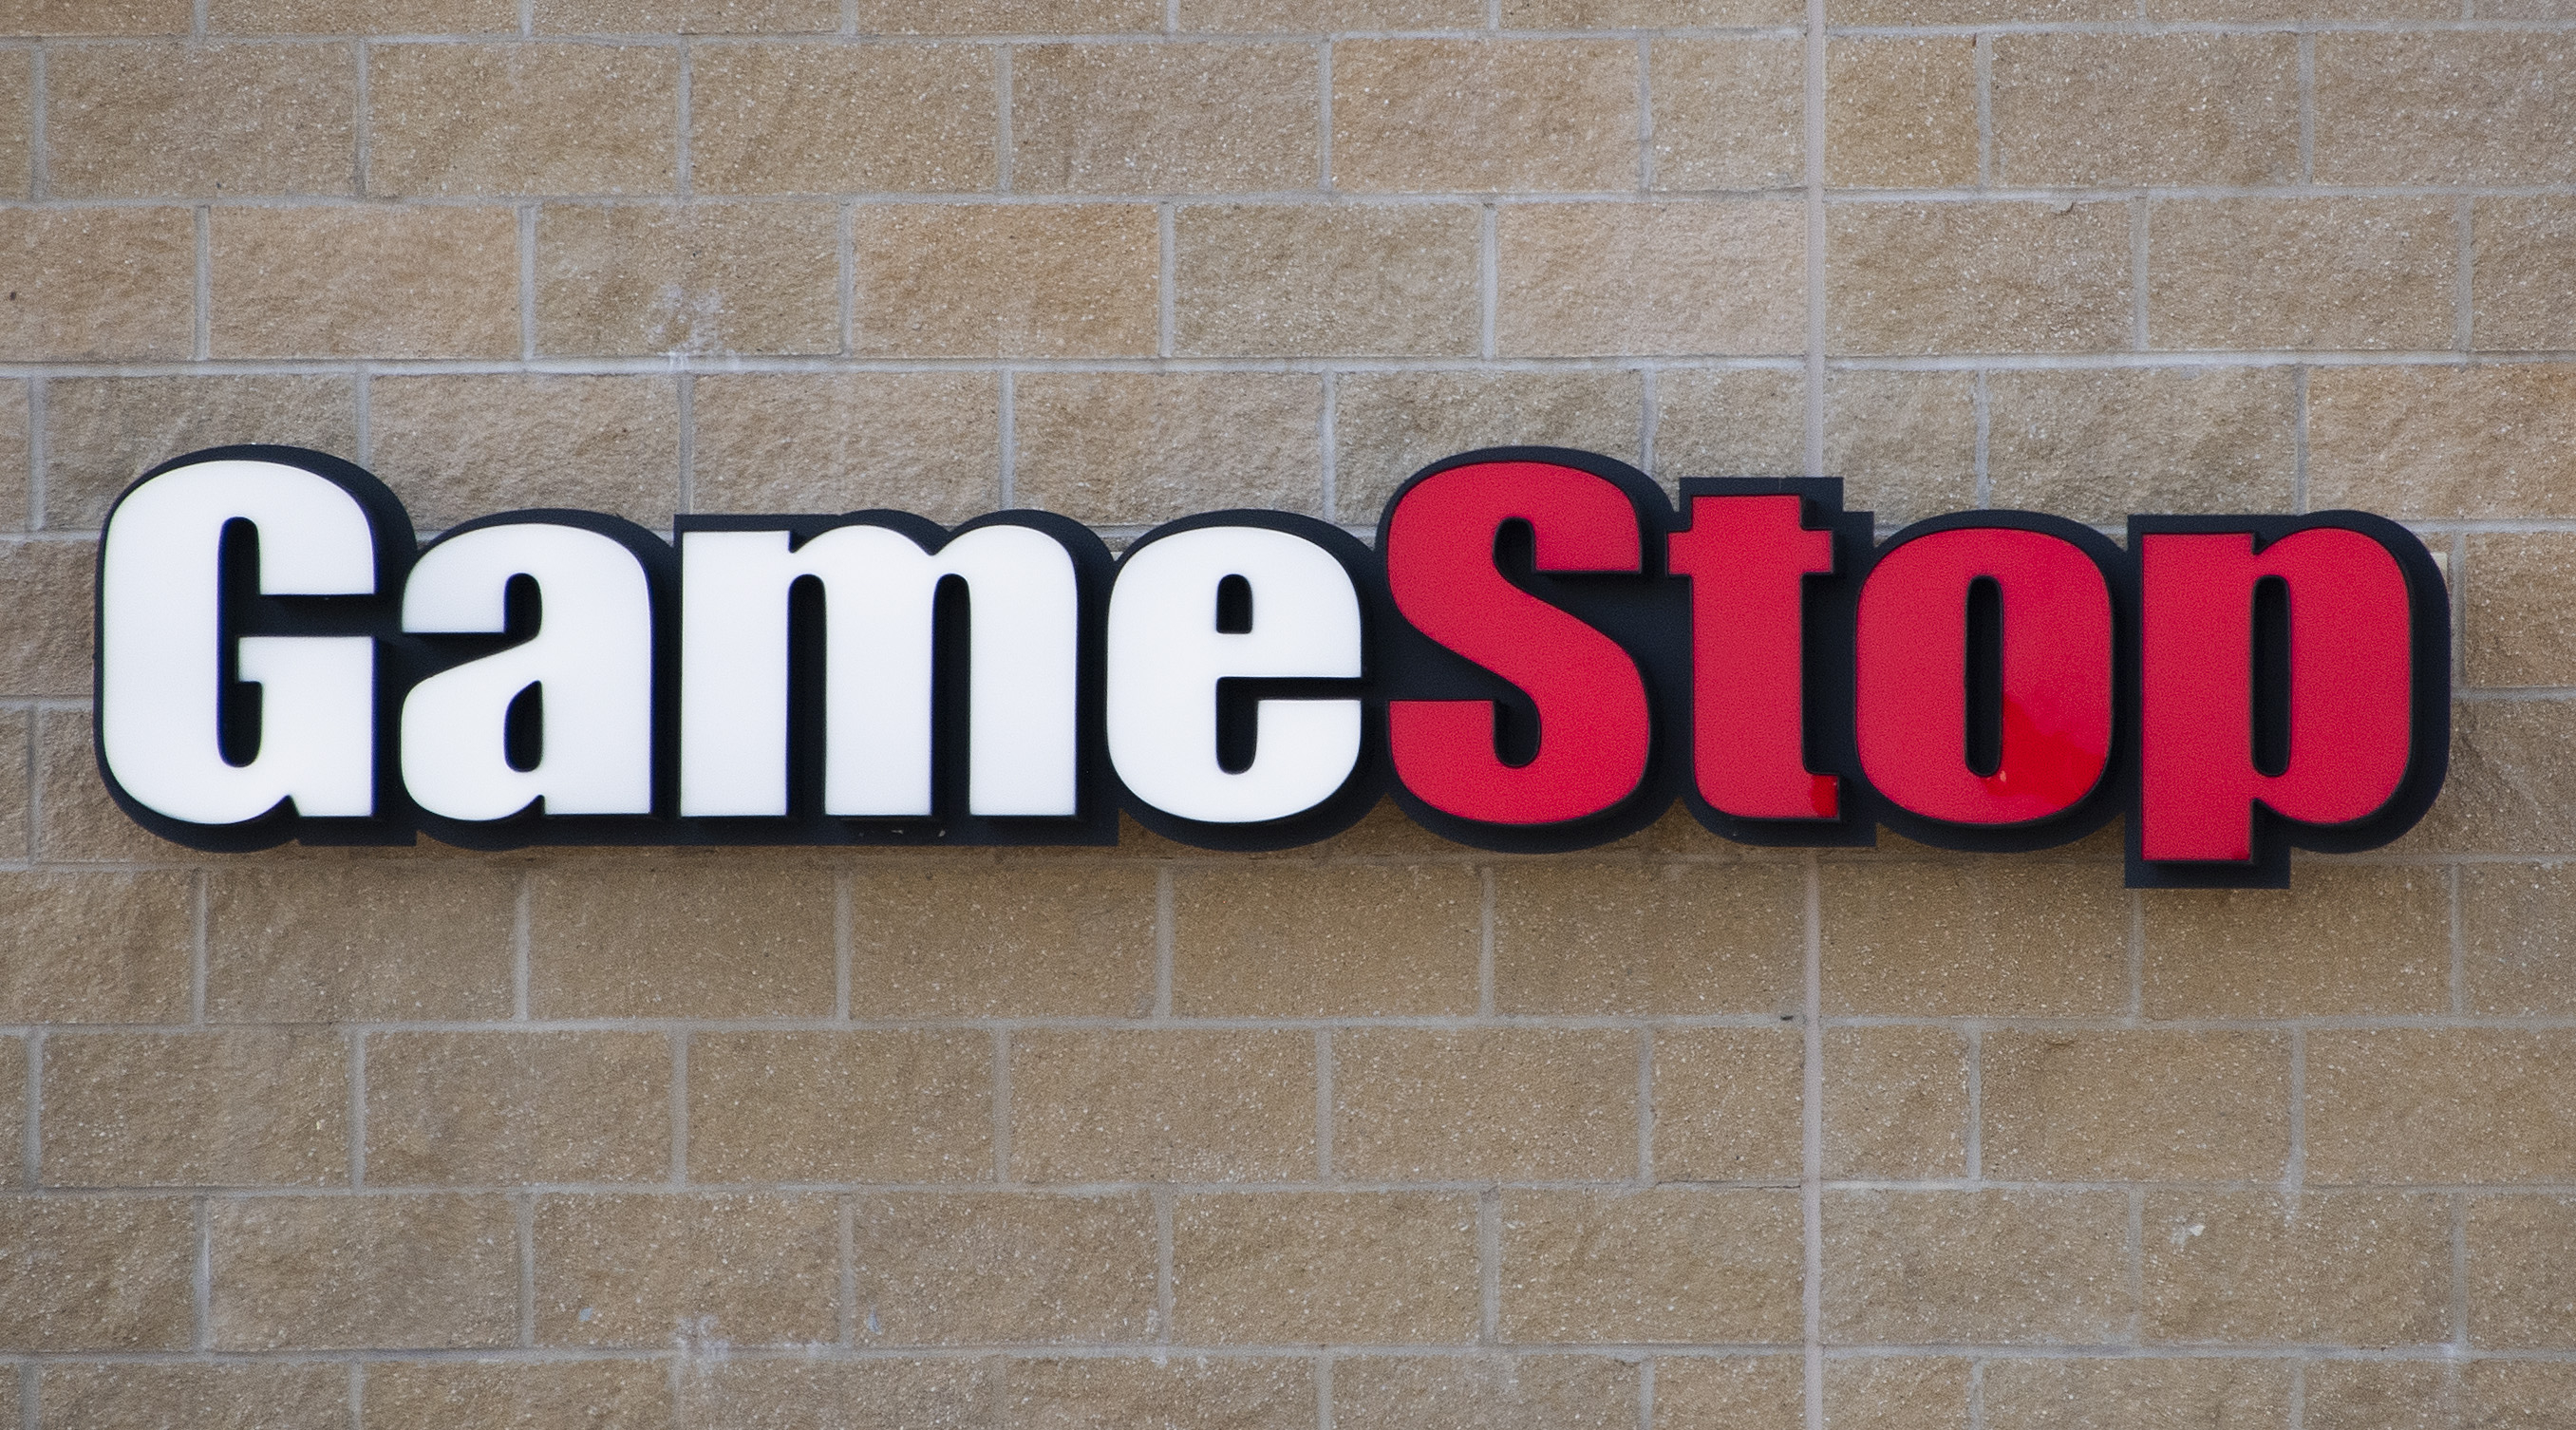 GameStop video game store in Middletown, DE, on July 26, 2019.